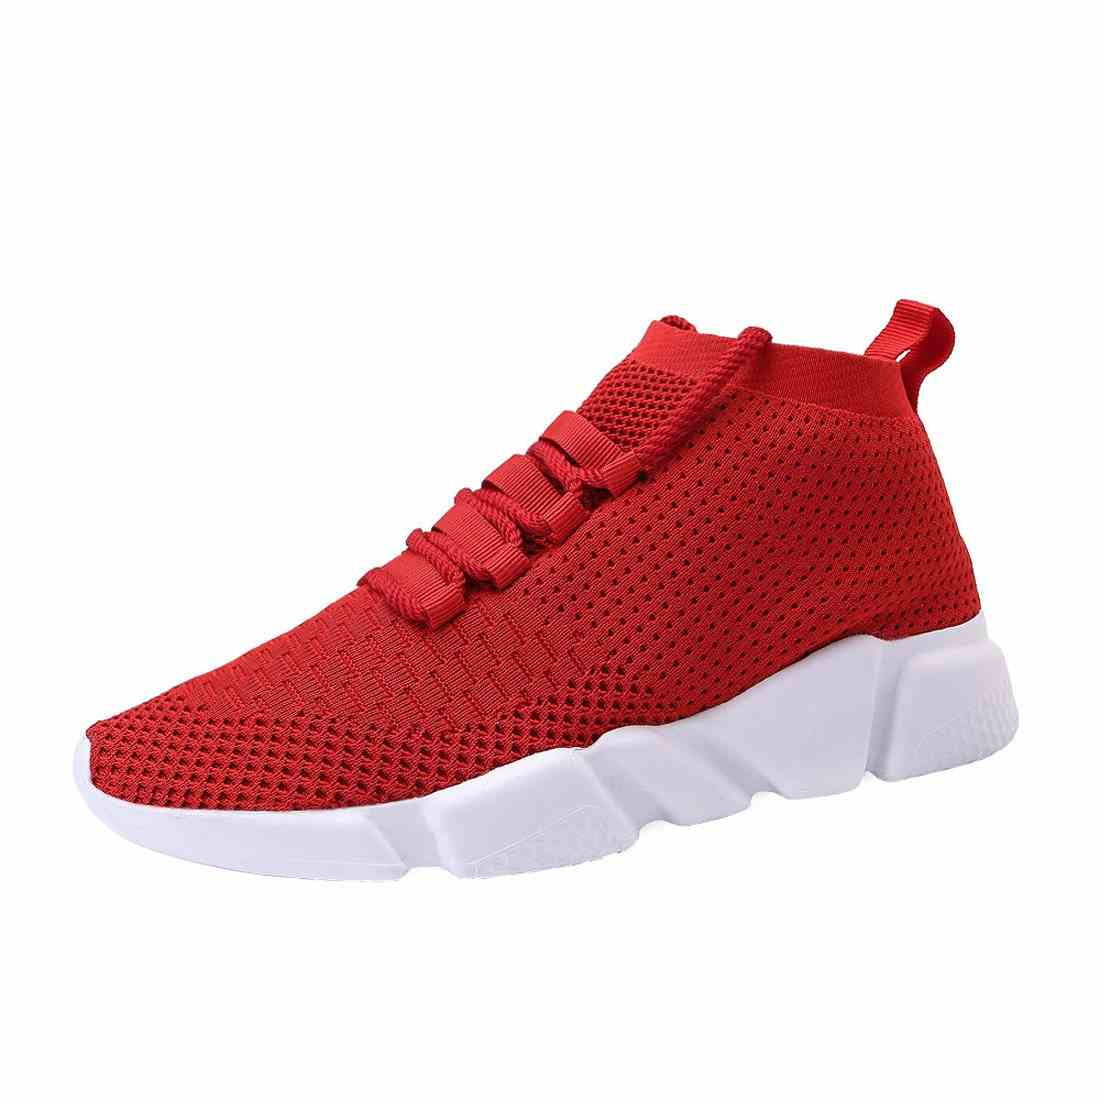 Mens Casual Athletic Sneakers Knit Running Shoes Tennis Shoe for Men